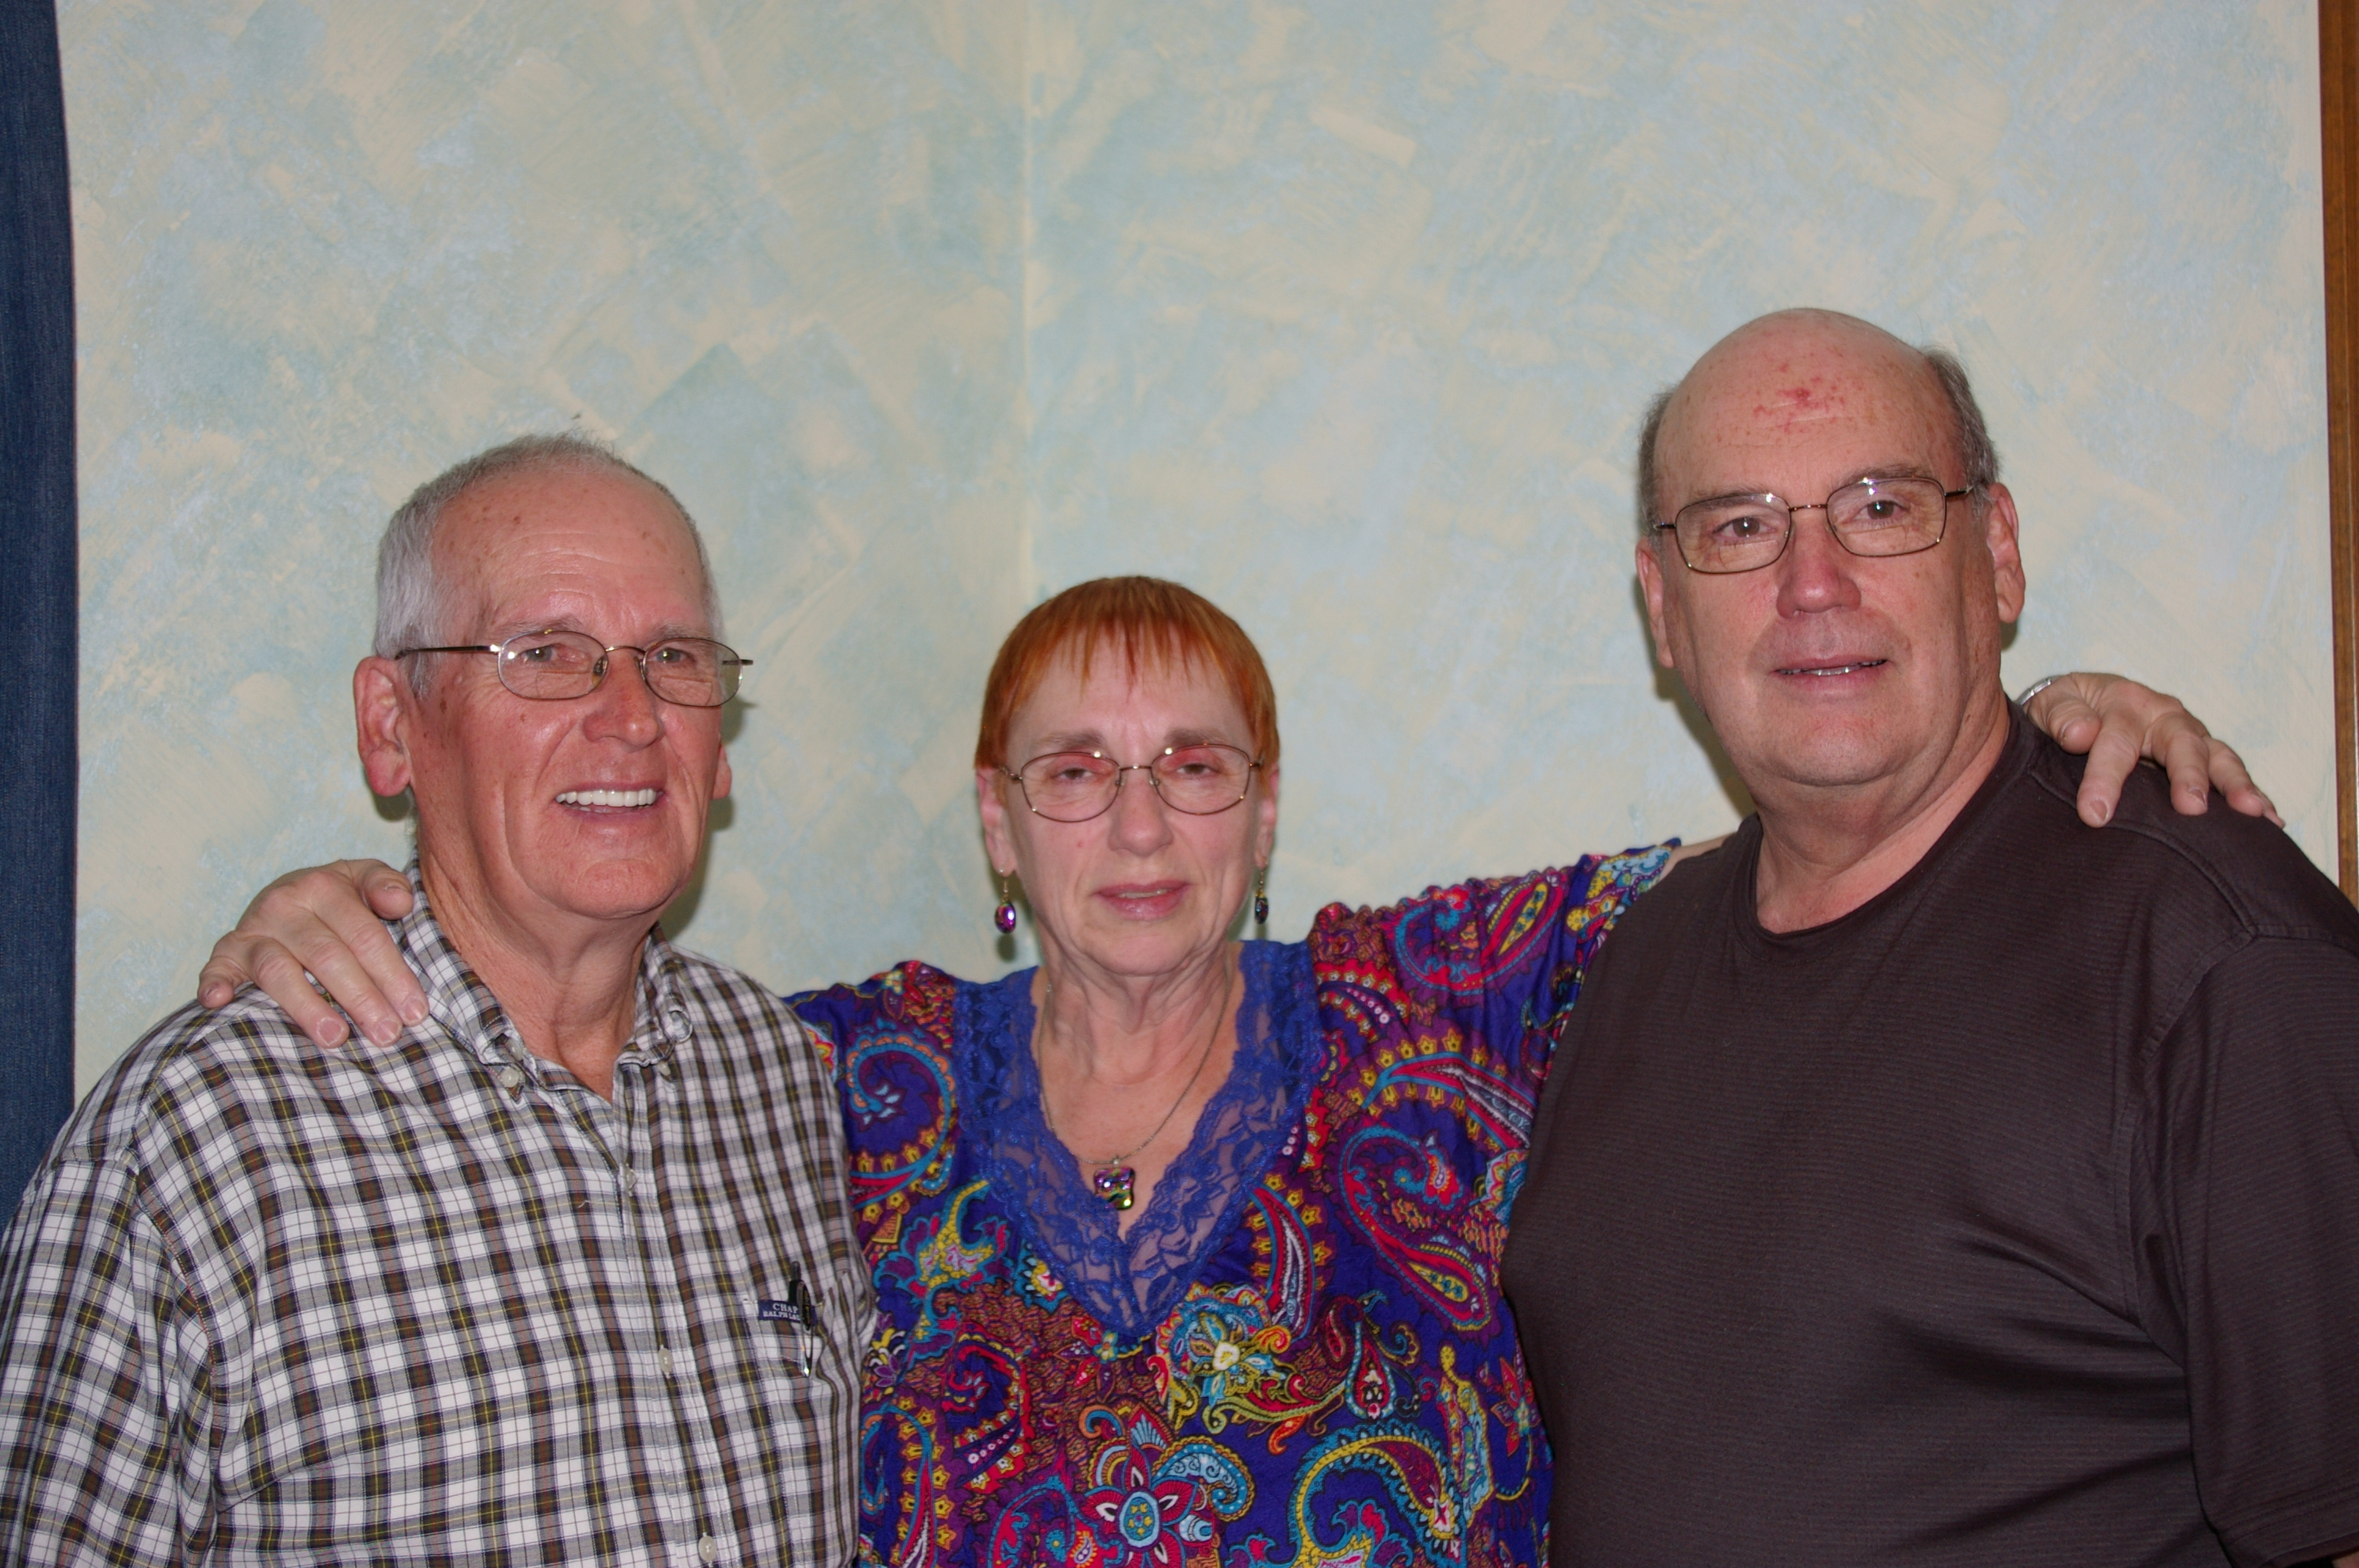 Dan, Jan and Ron (Nov 2012)